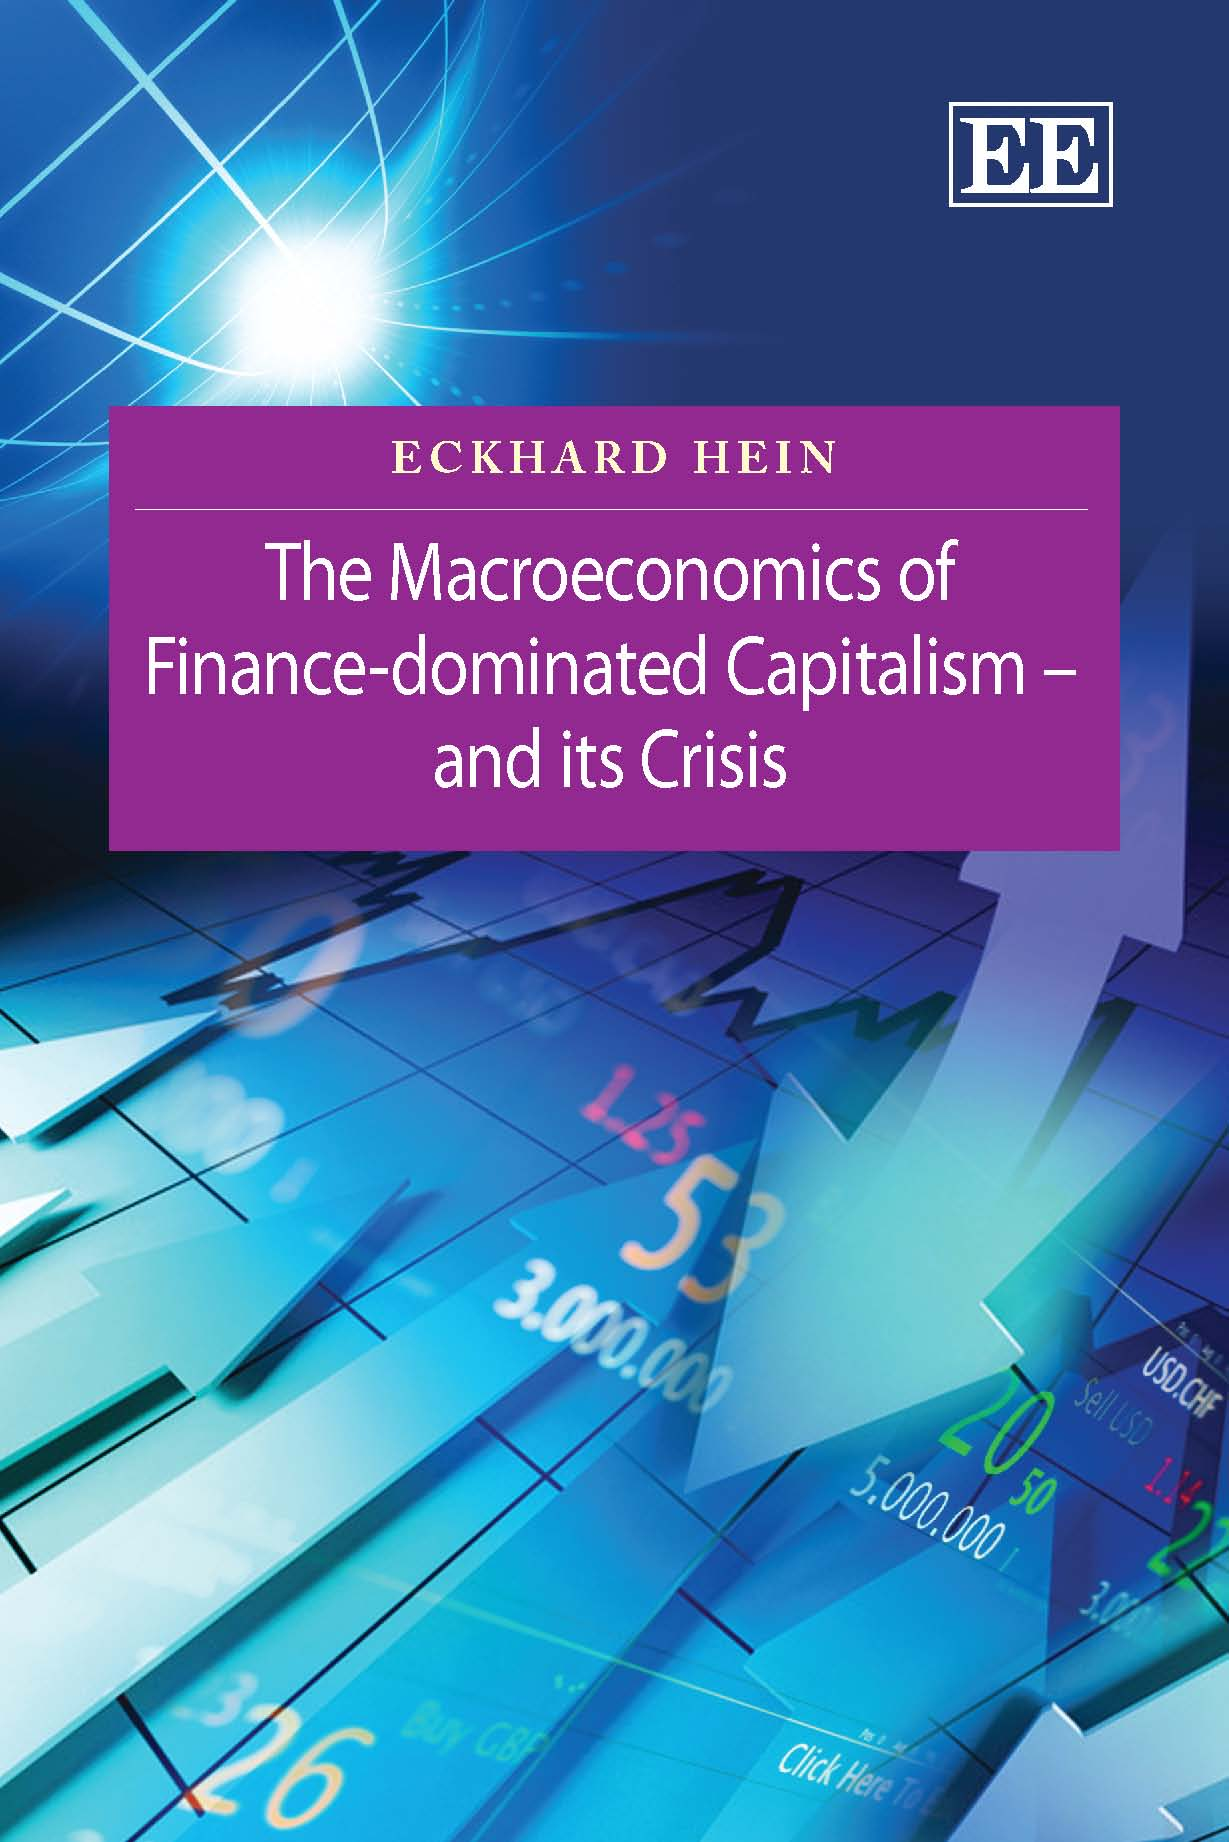 Download Ebook The Macroeconomics of Finance-Dominated Capitalism – and its Crisis by Eckhard Hein Pdf